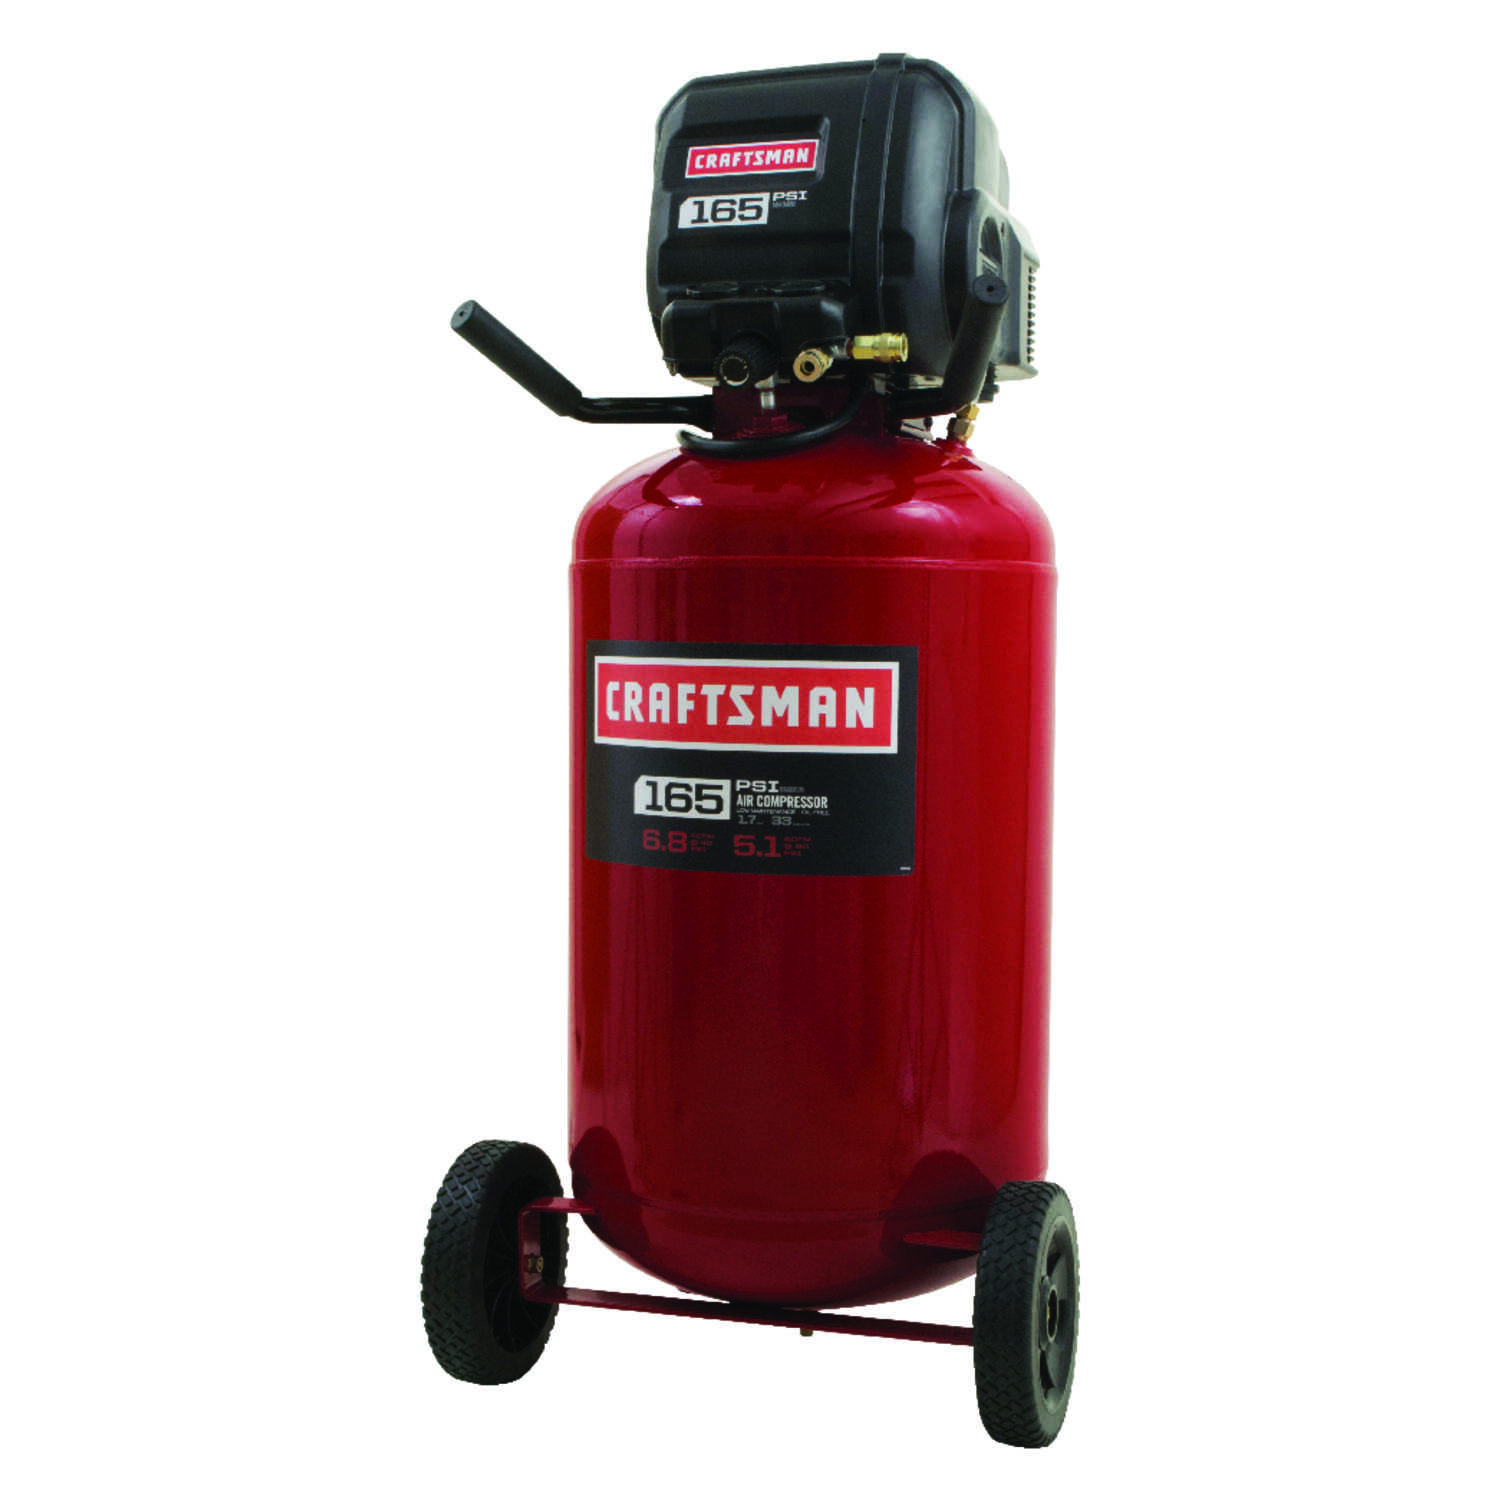 Craftsman  33 gal. Portable Air Compressor  165 psi 1.7 hp